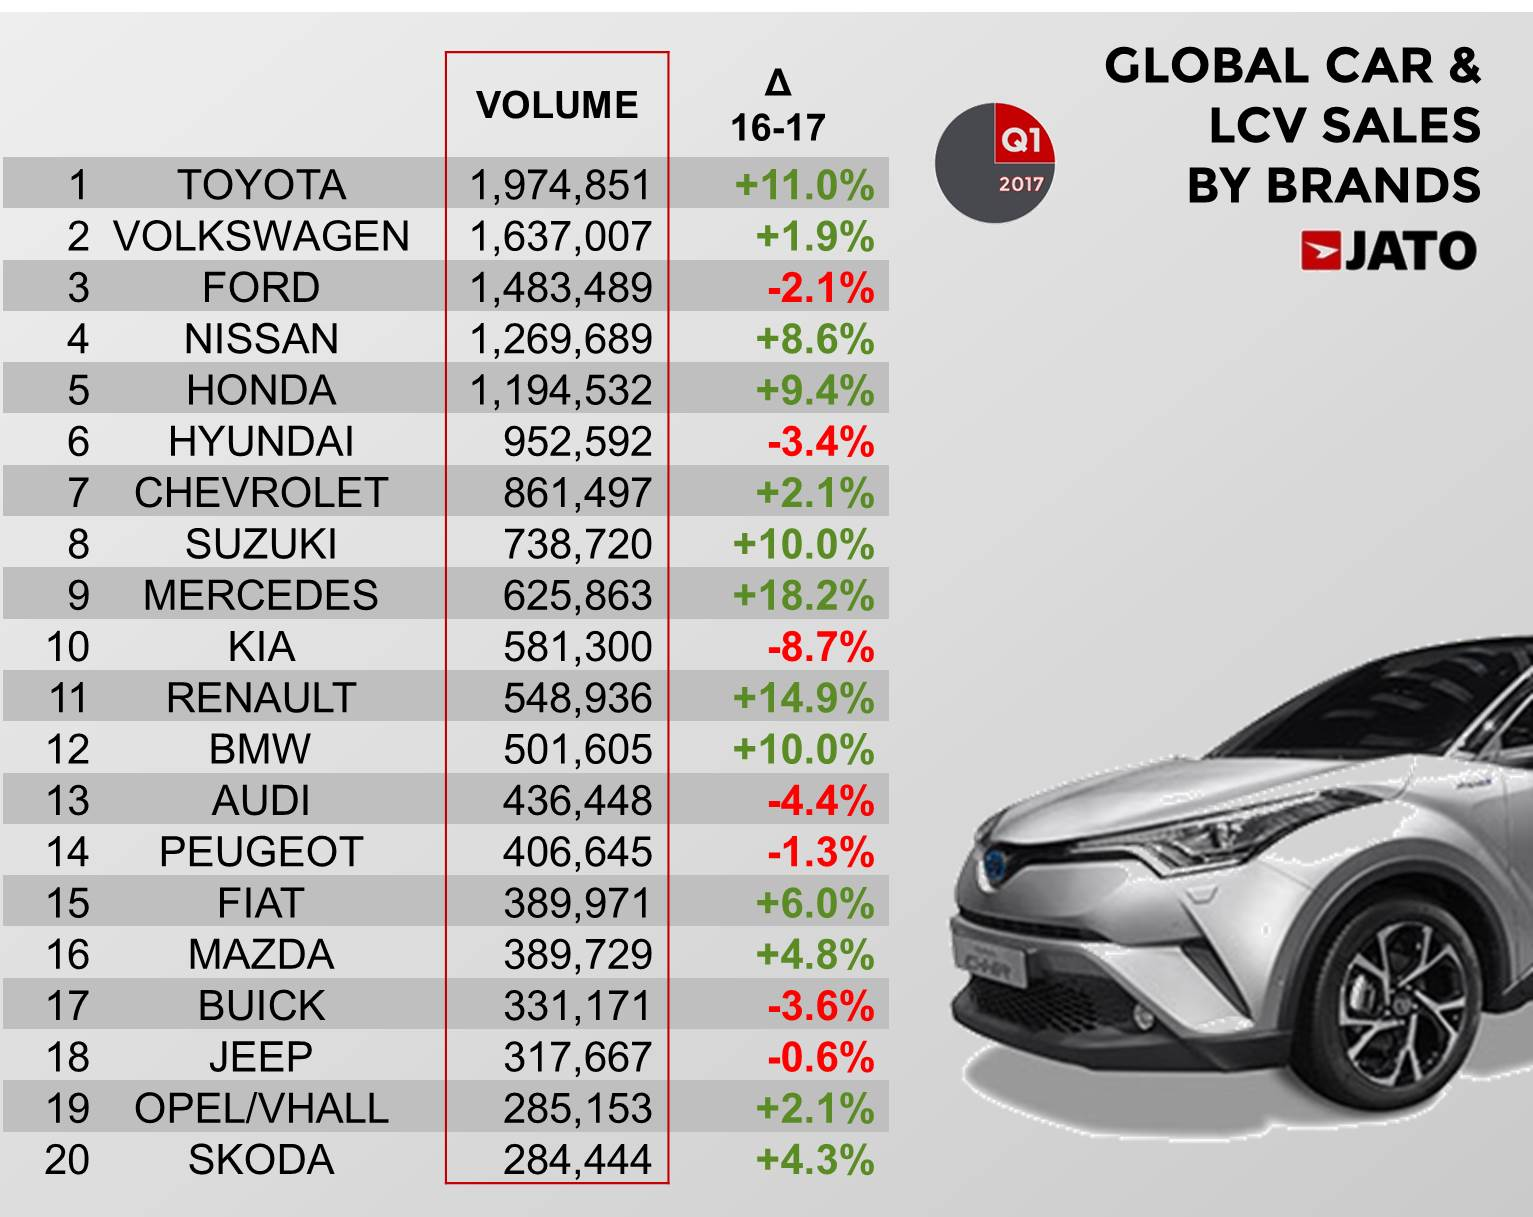 Global Vehicle Sales Up By 4 7 In Q1 17 With Renault Nissan Hitting Top 3 Jato